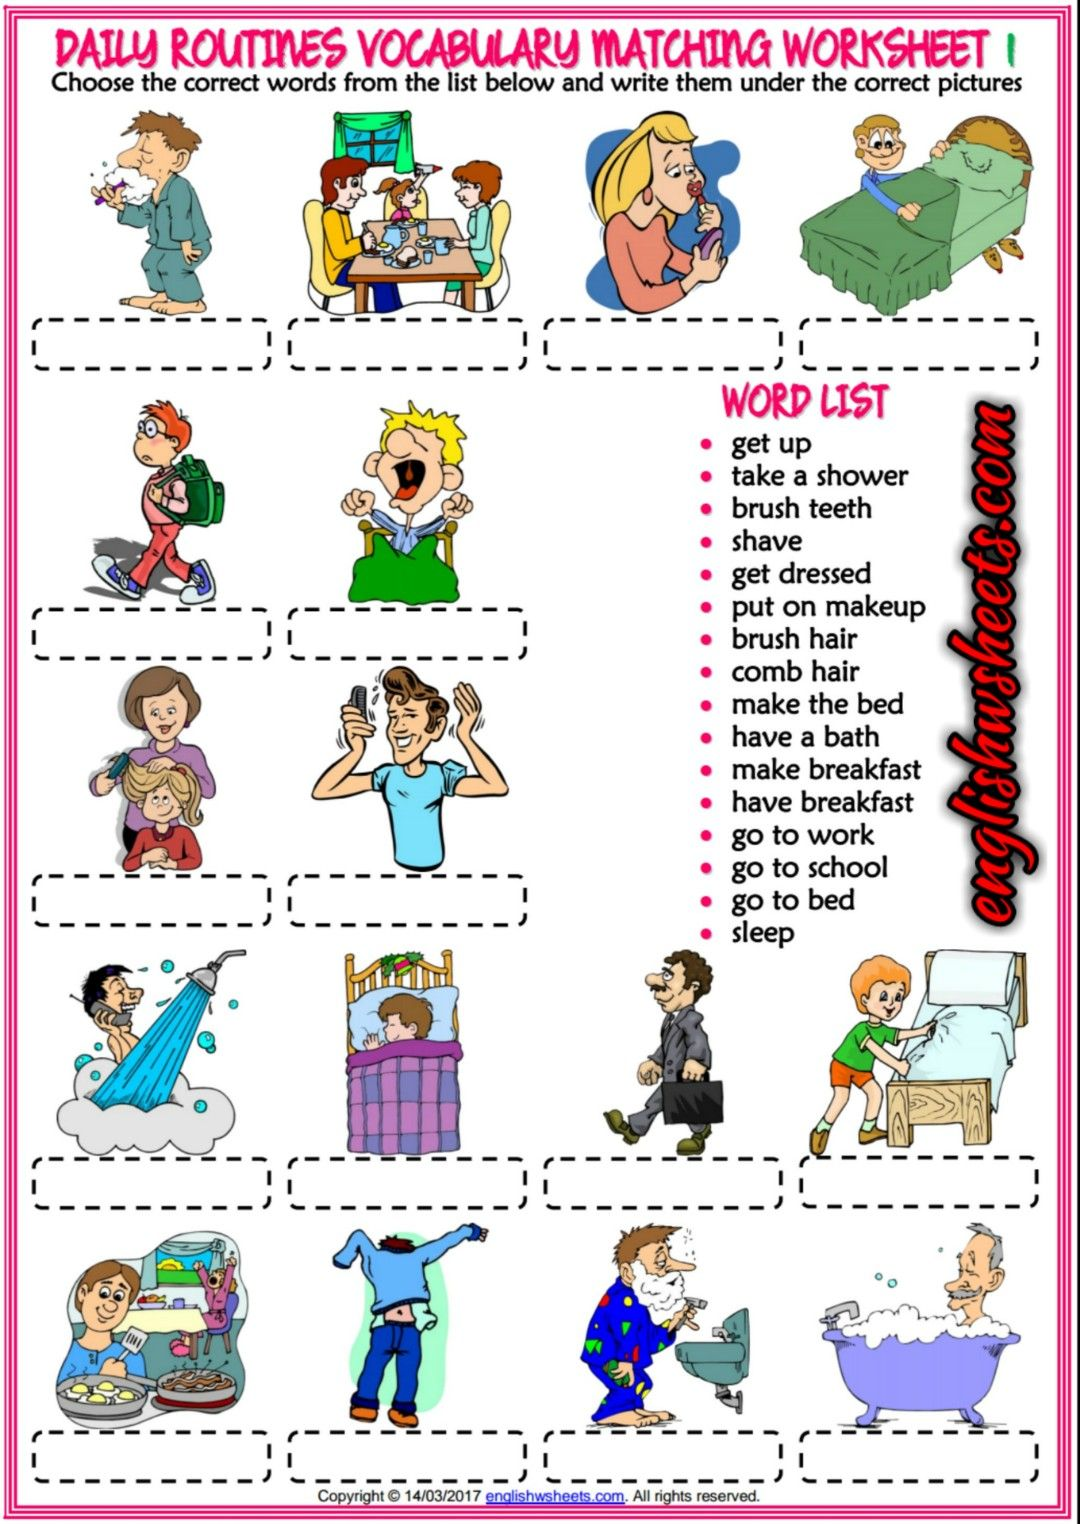 Fun Esl Printable Matching Exercise Worksheets For Kids To